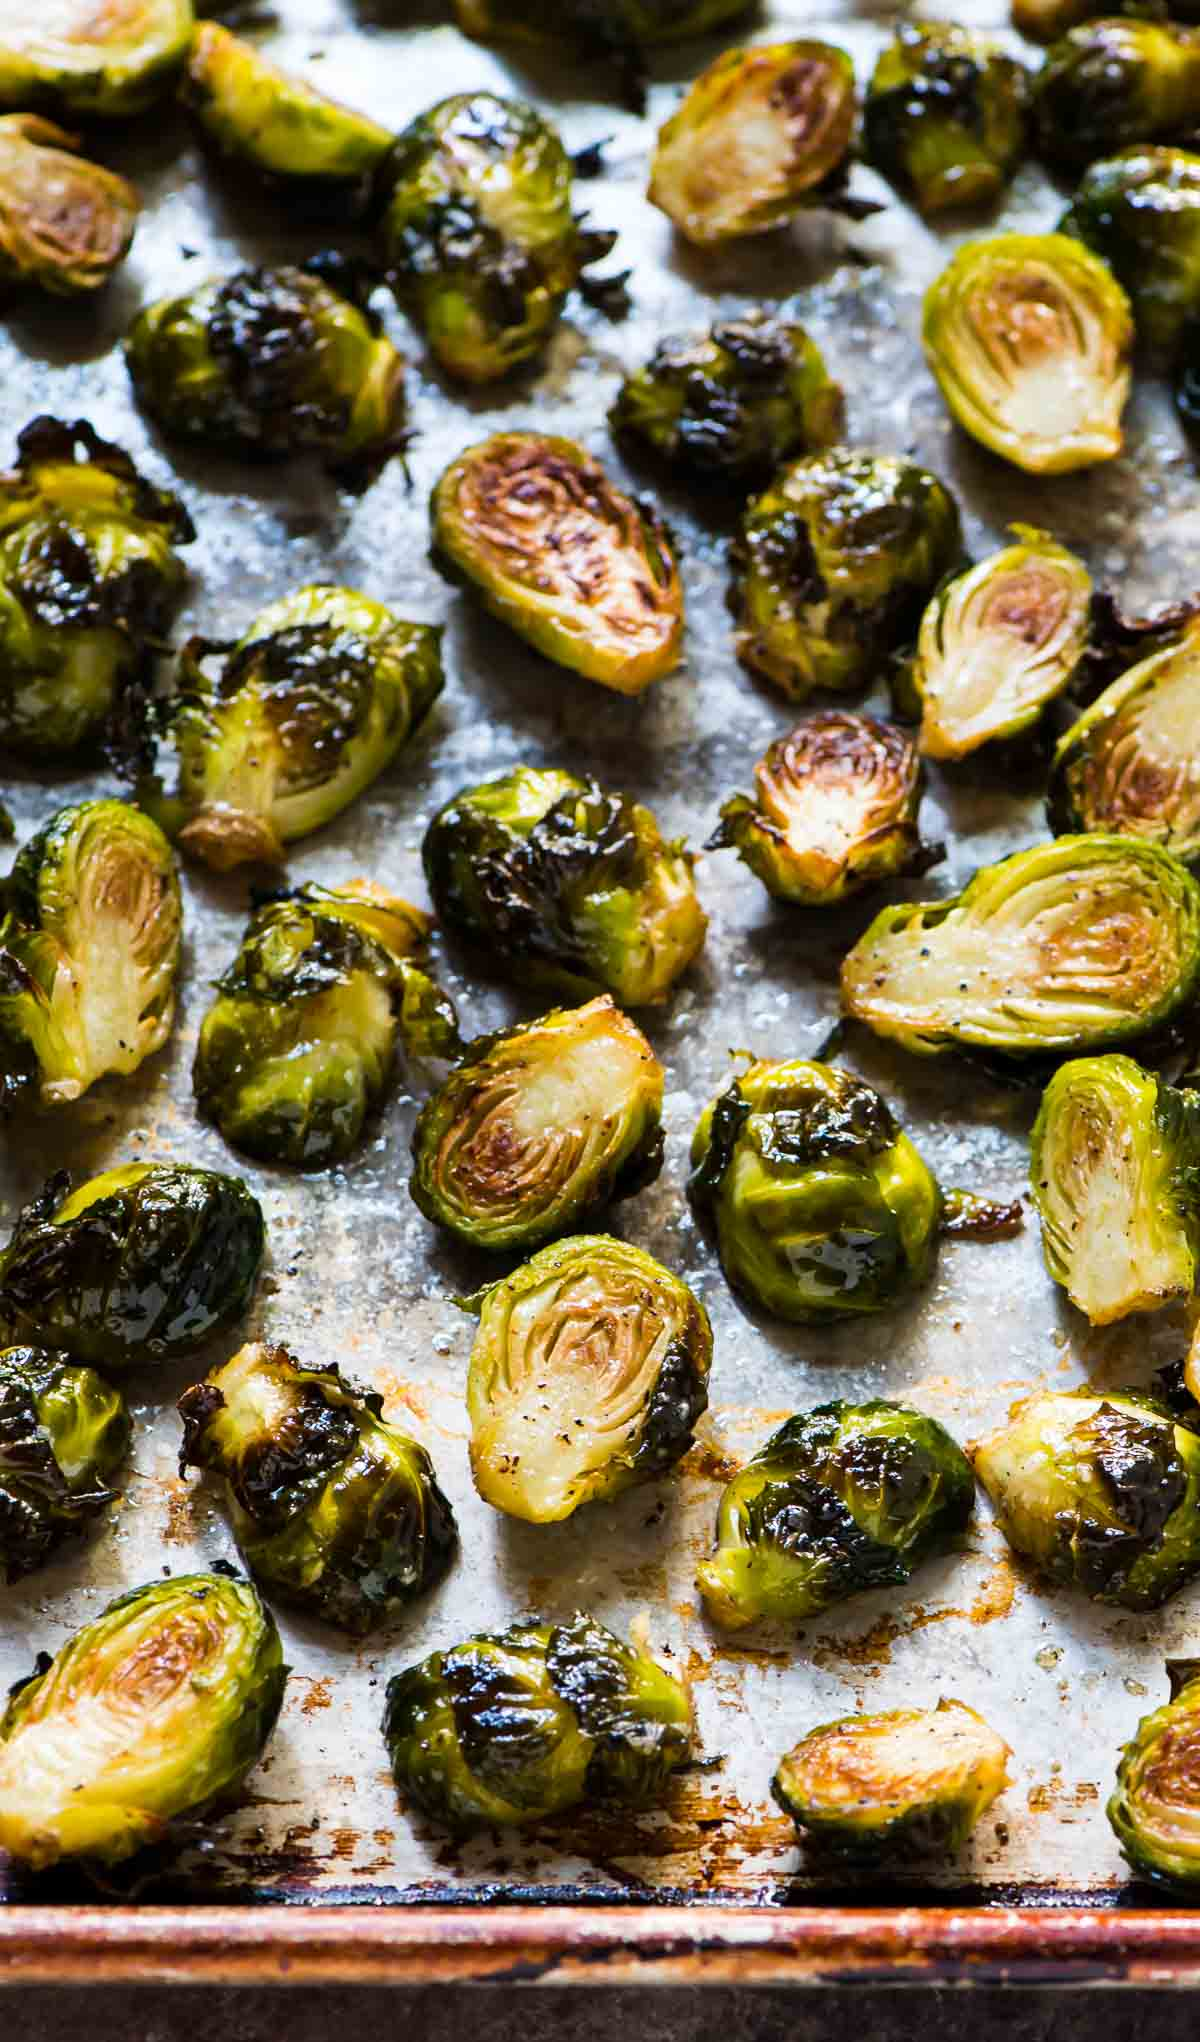 Roasted Brussels Sprouts and Butternut Squash With Bacon Bits and a Maple Glaze